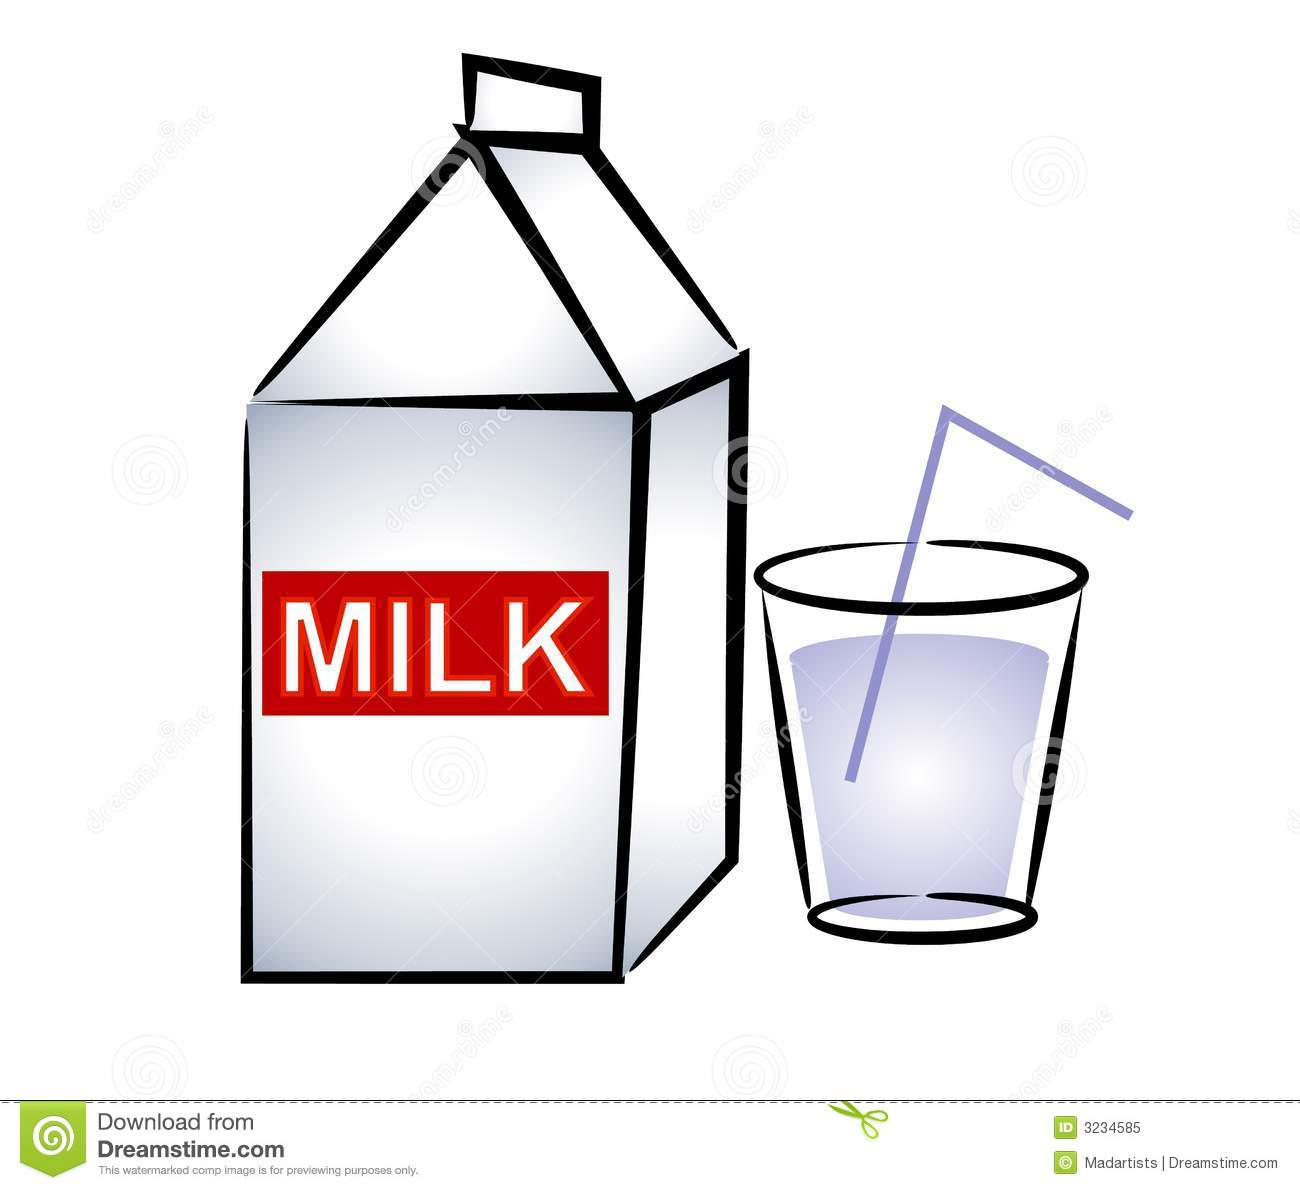 clipart of a glass of milk - photo #2